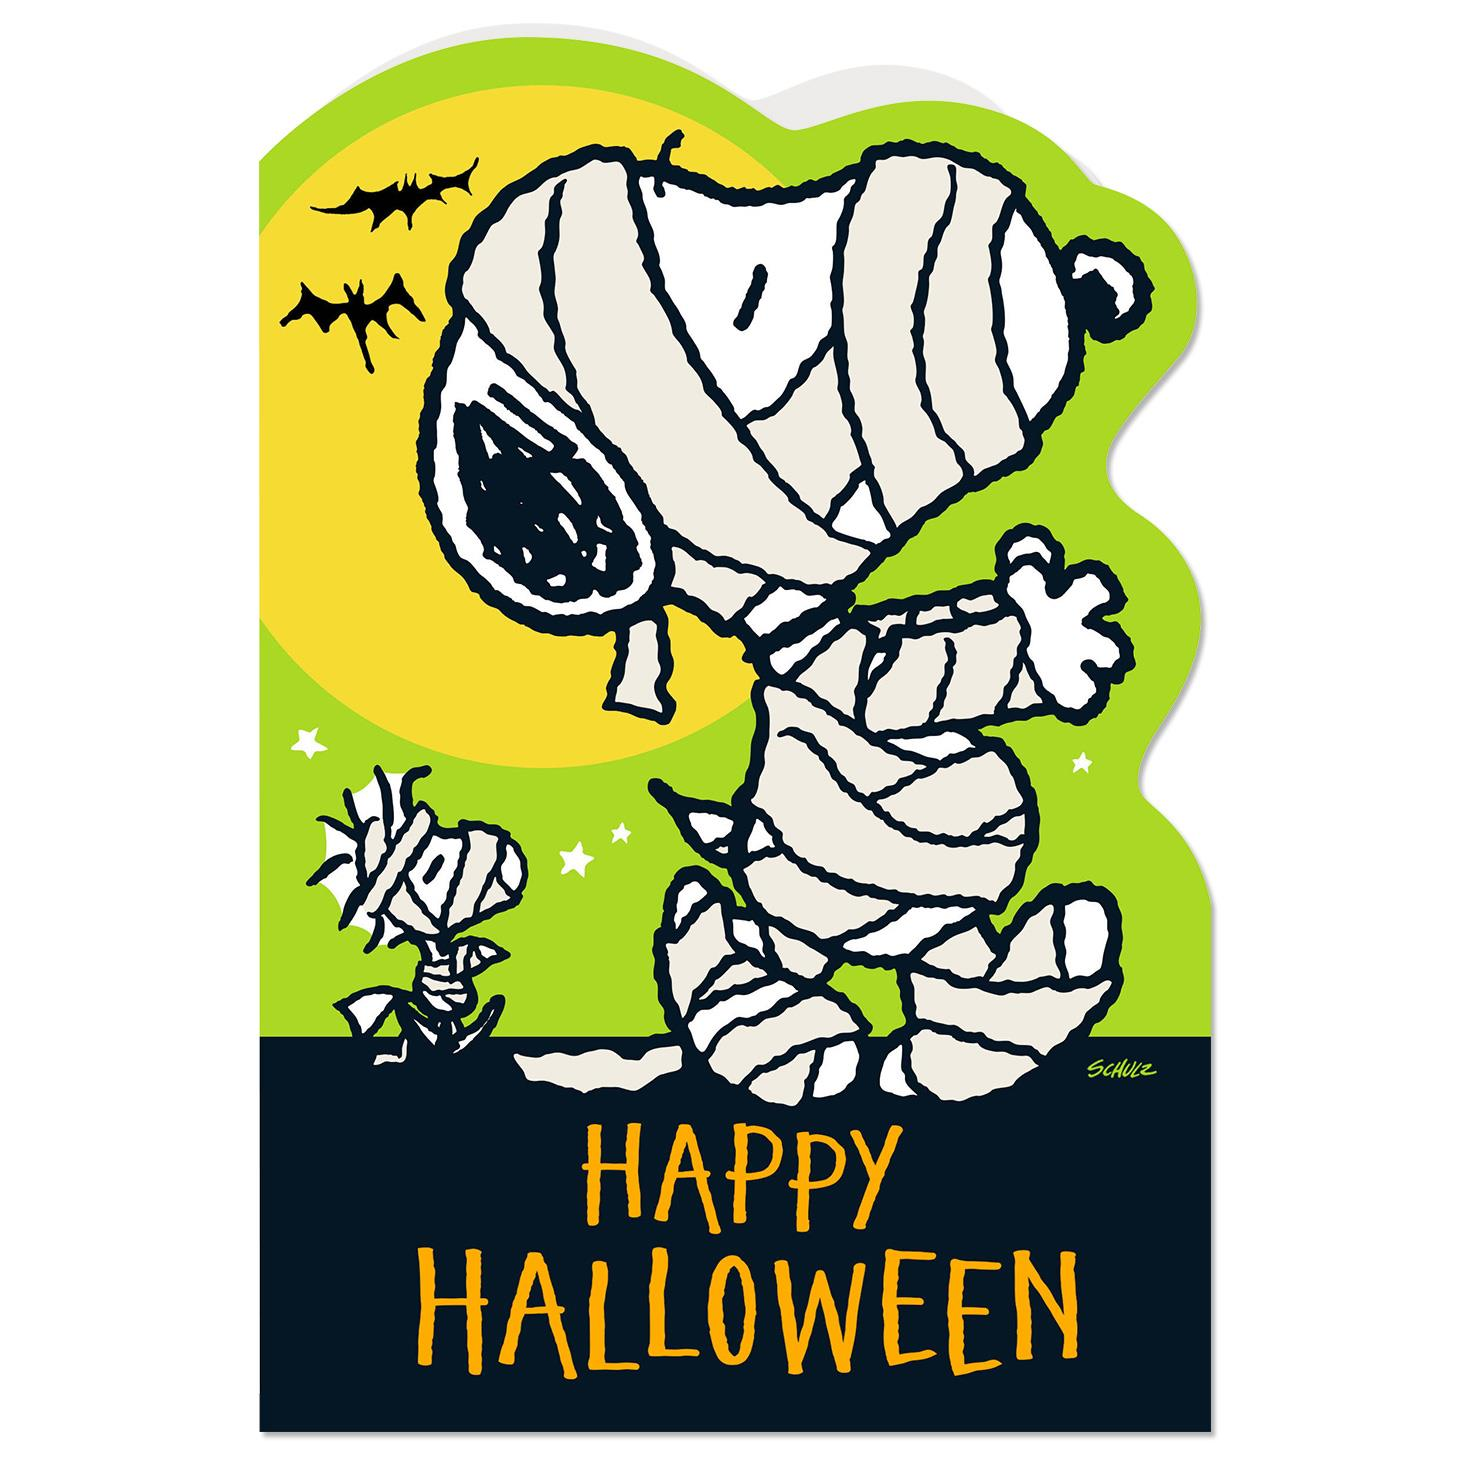 Peanuts Mummy Snoopy And Woodstock Halloween Card